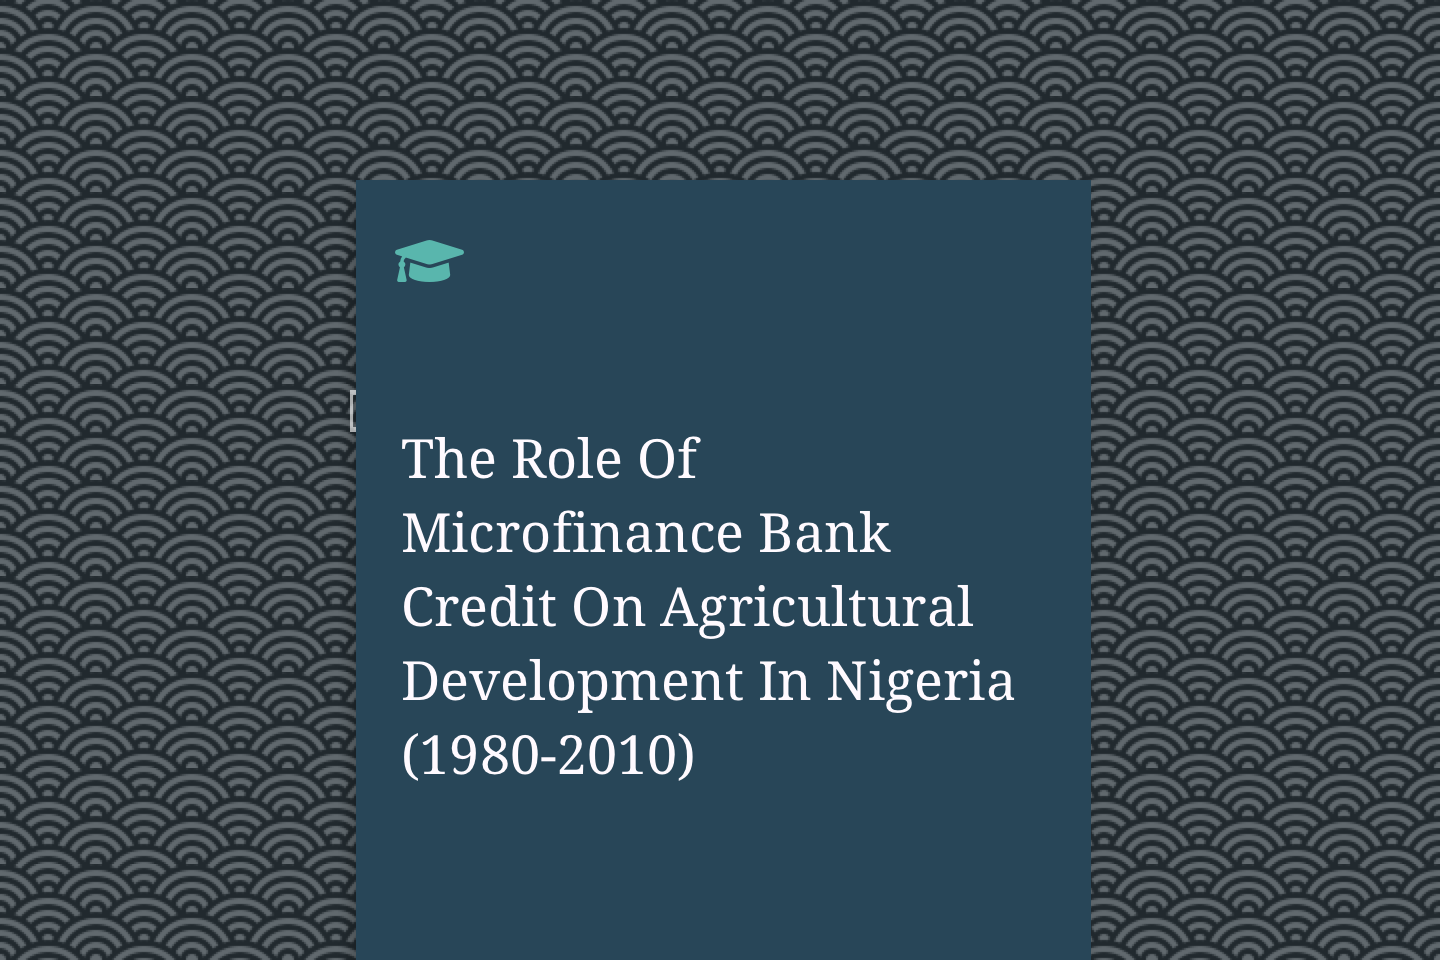 The Role Of Microfinance Bank Credit On Agricultural Development In Nigeria (1980-2010)